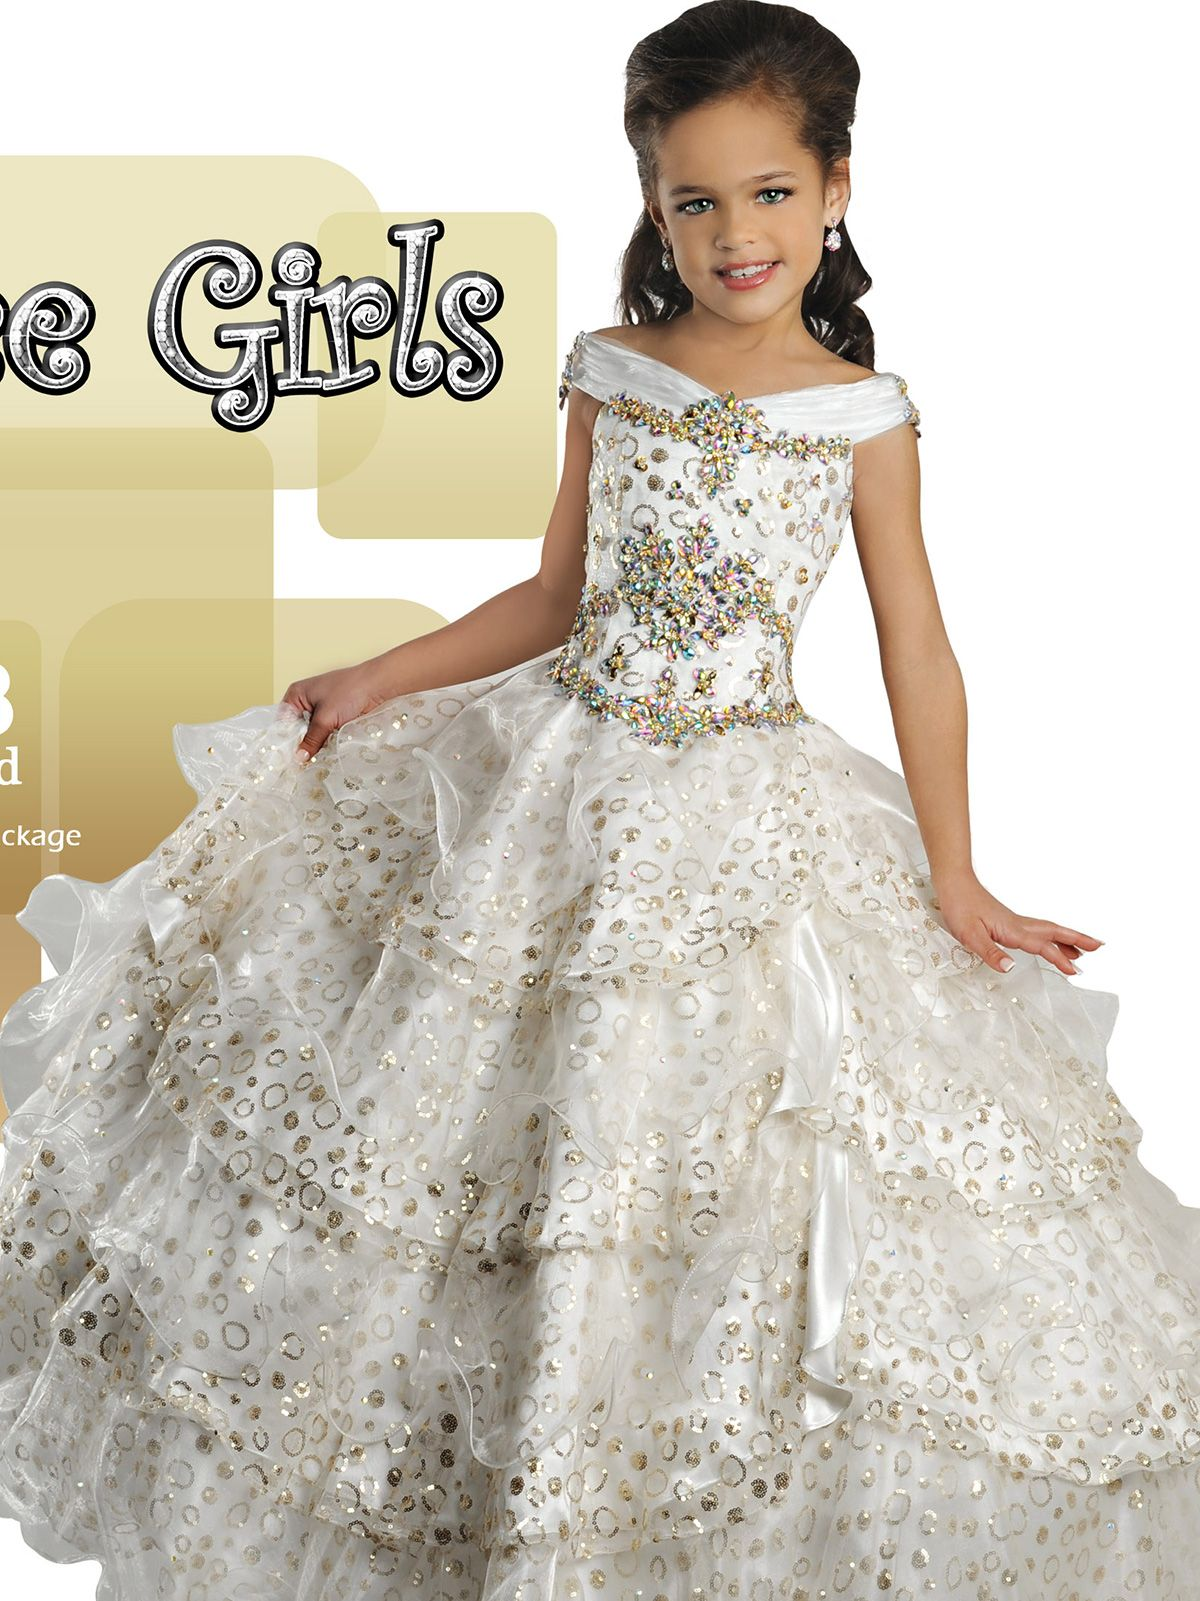 A junior size pageant dress like no other, the Ritzee Girls 6